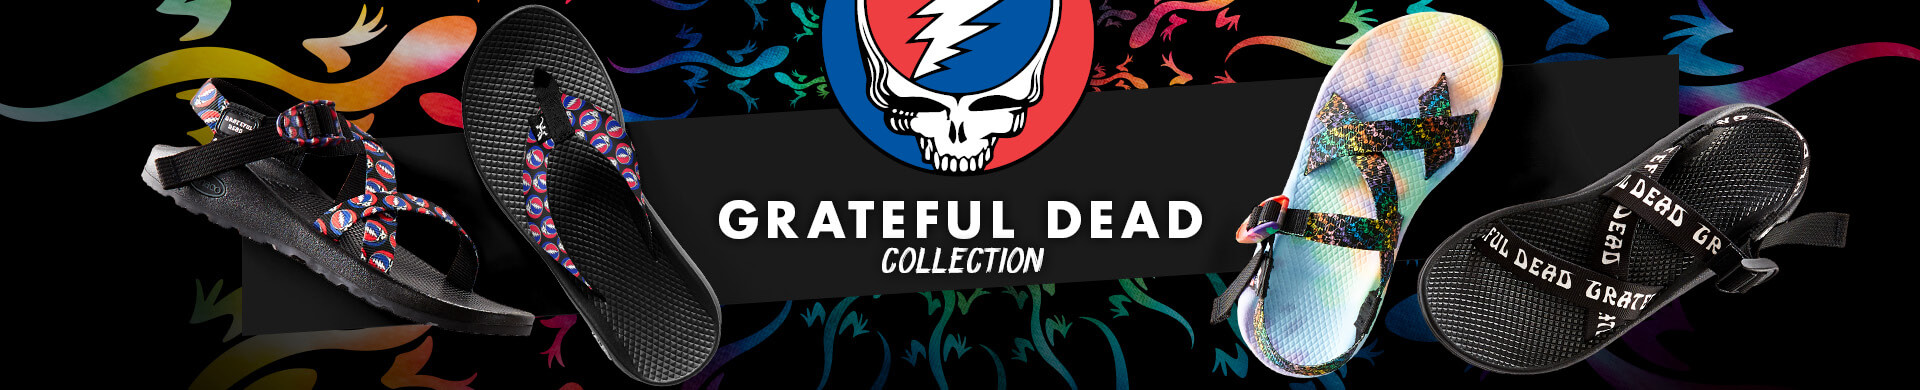 Grateful Dead Collection